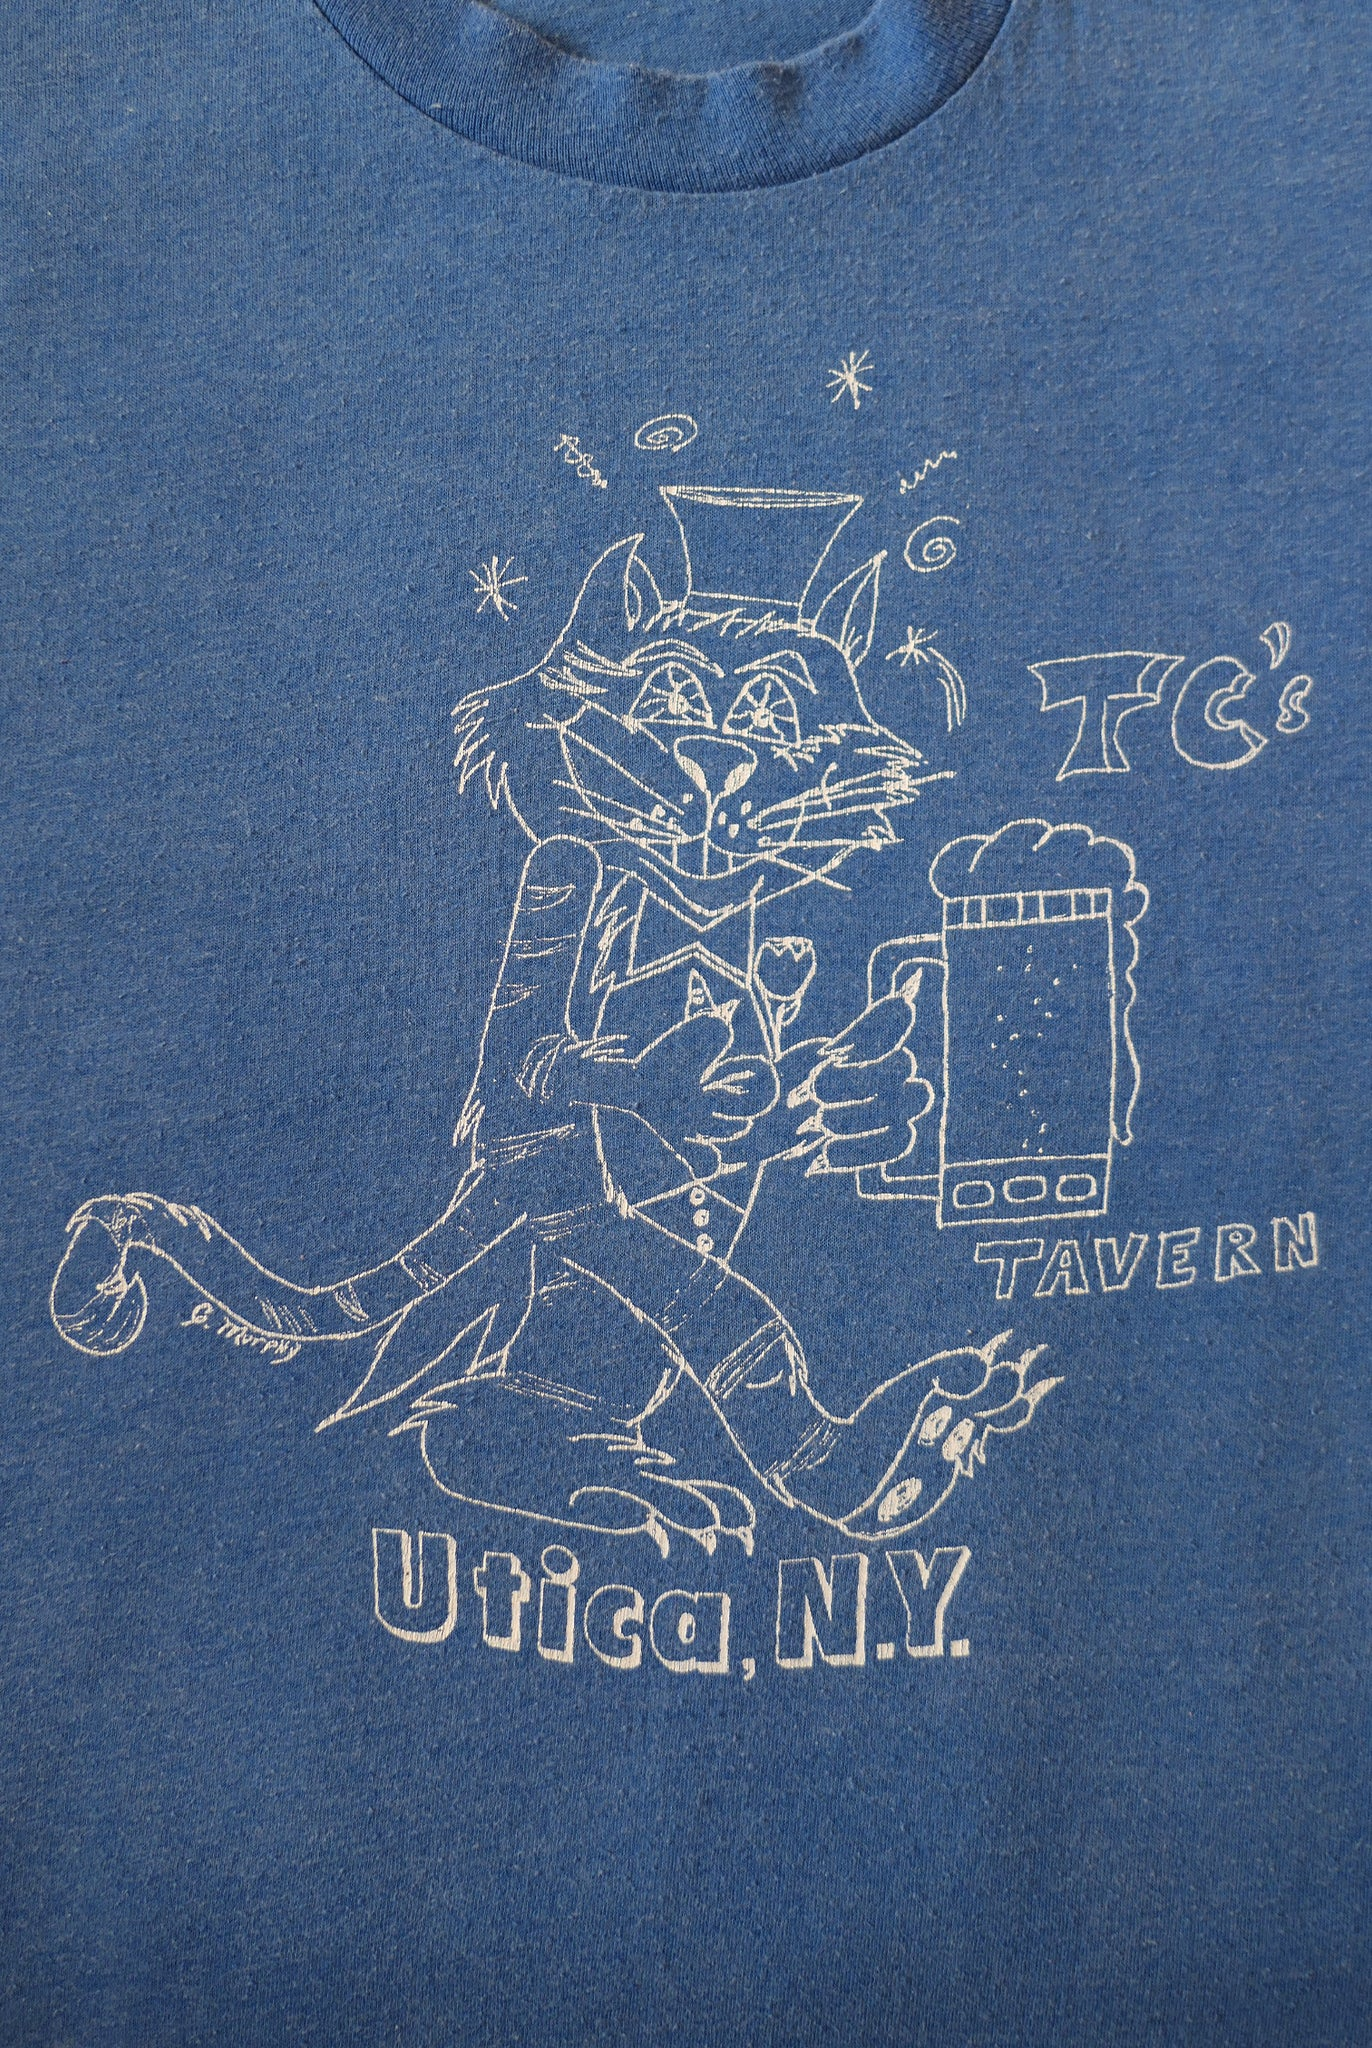 vintage 1980s utica tavern new york t-shirt